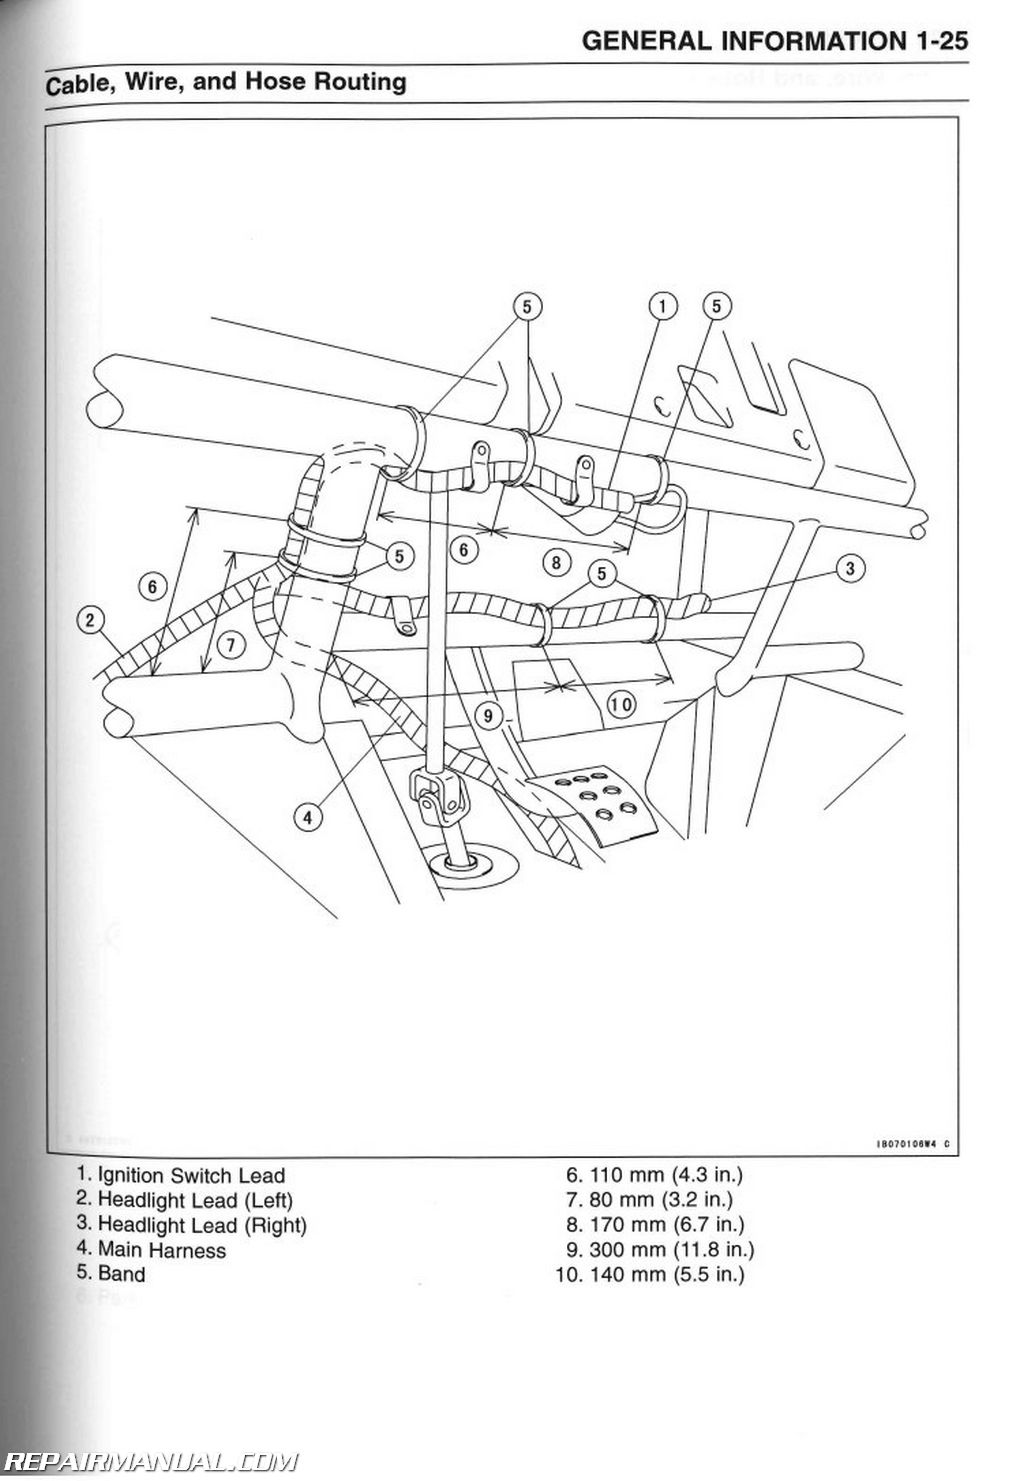 kawasaki mule 3010 wiring diagram ford voltage regulator kaf620e parts and fuse box